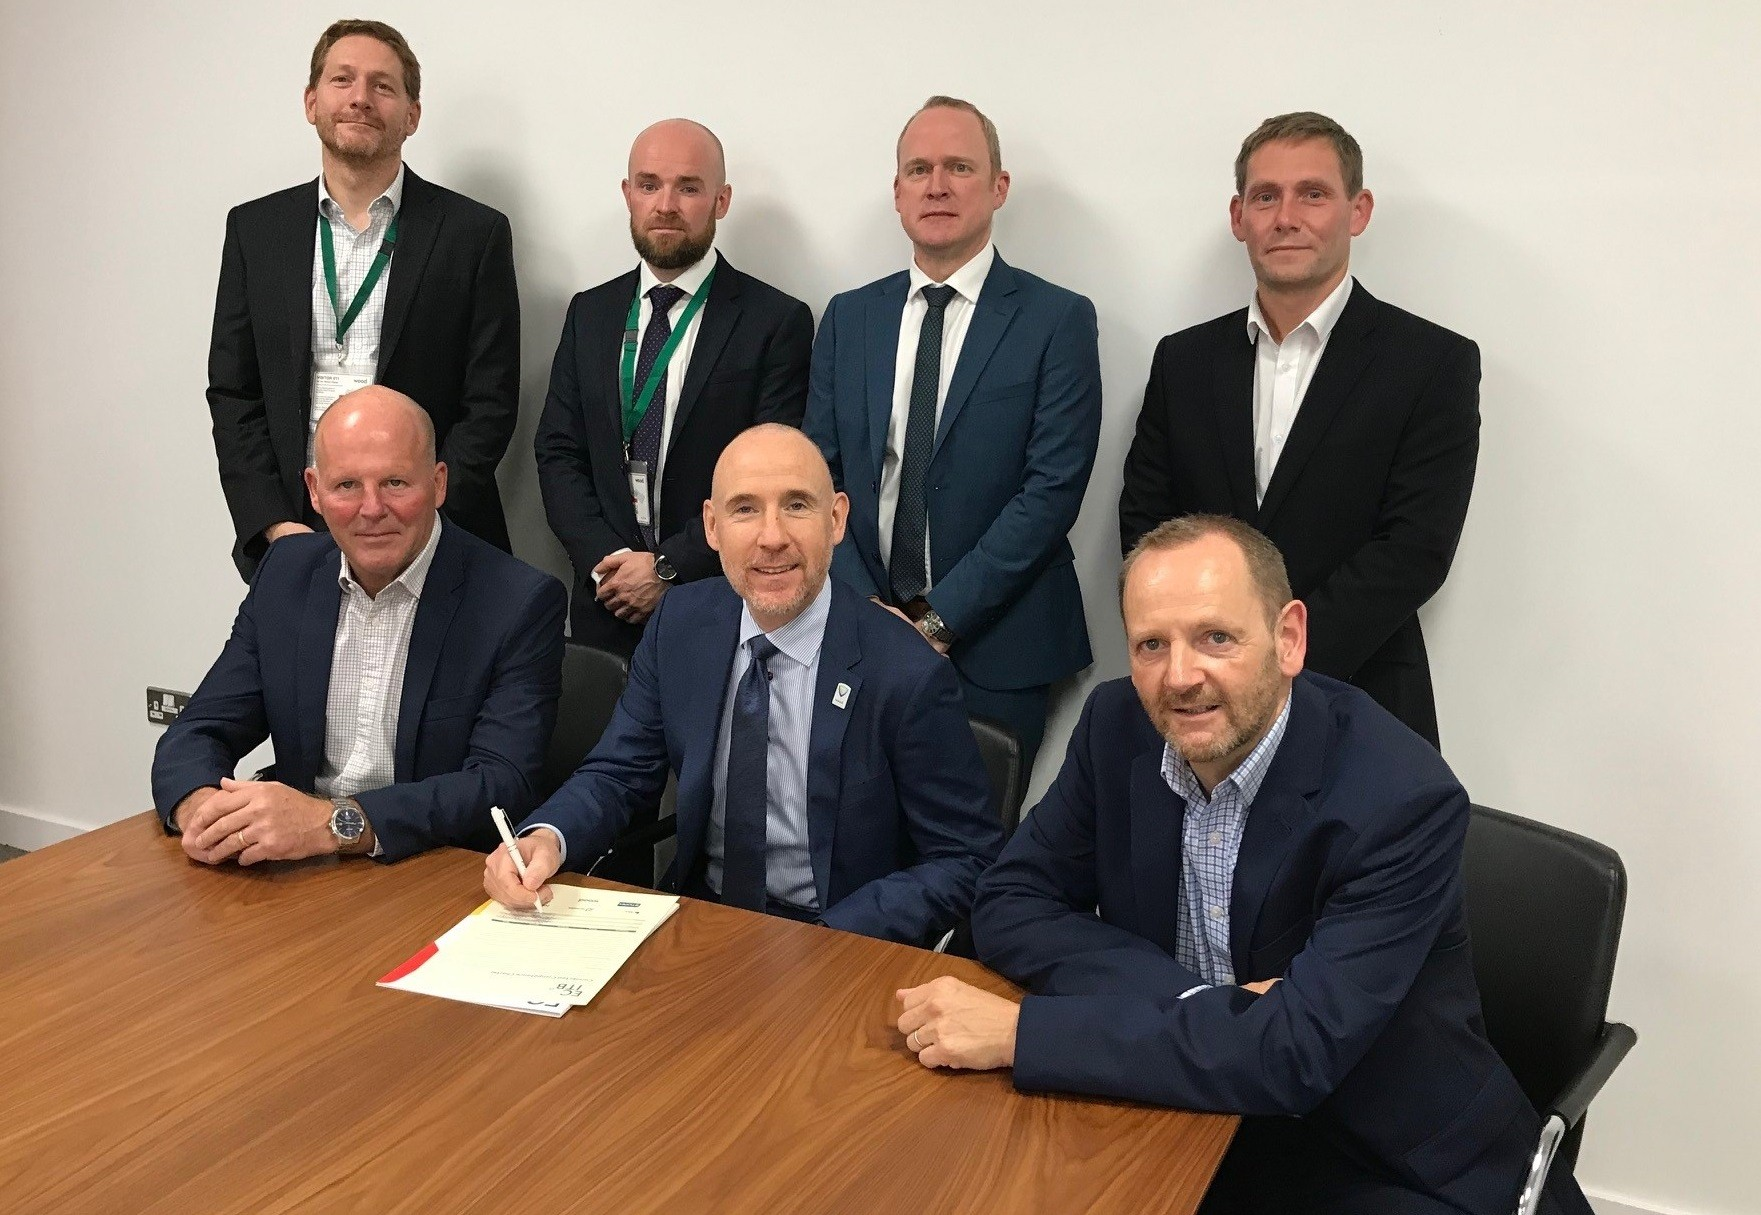 Members of the new Industry Council sign the charter in Aberdeen